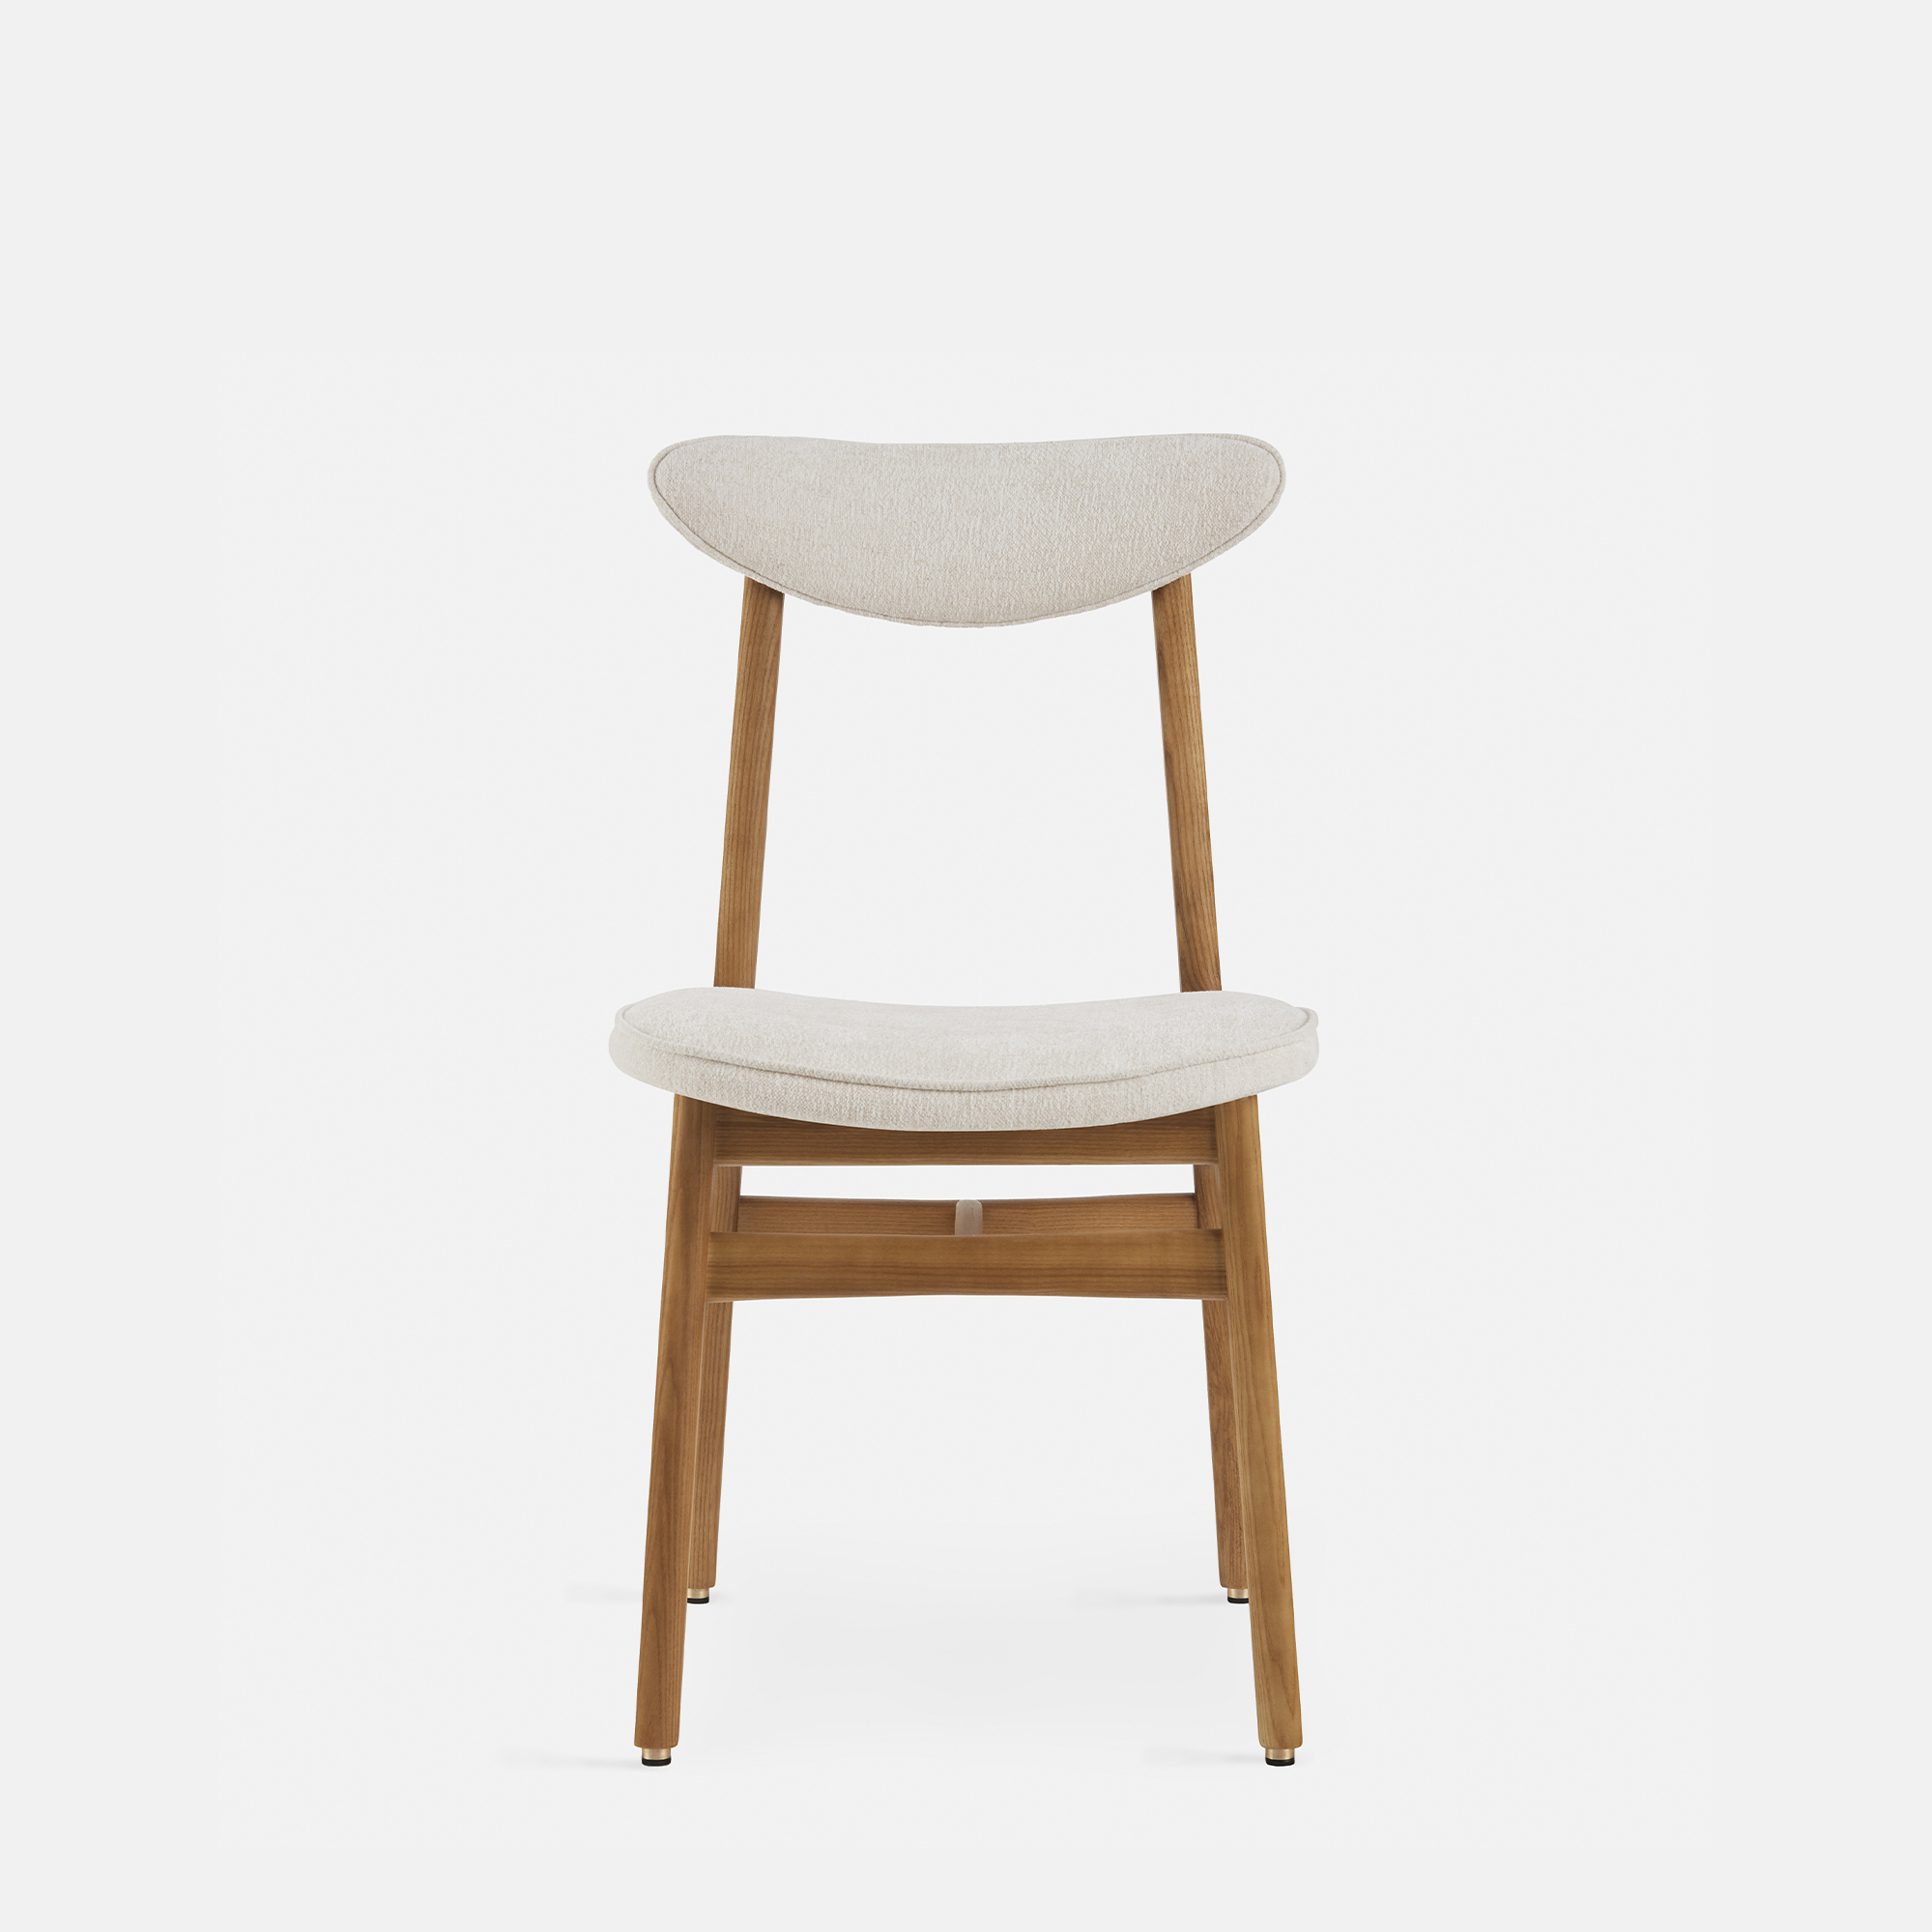 366-Concept-200-190-Chair-W02-Marble-White-front